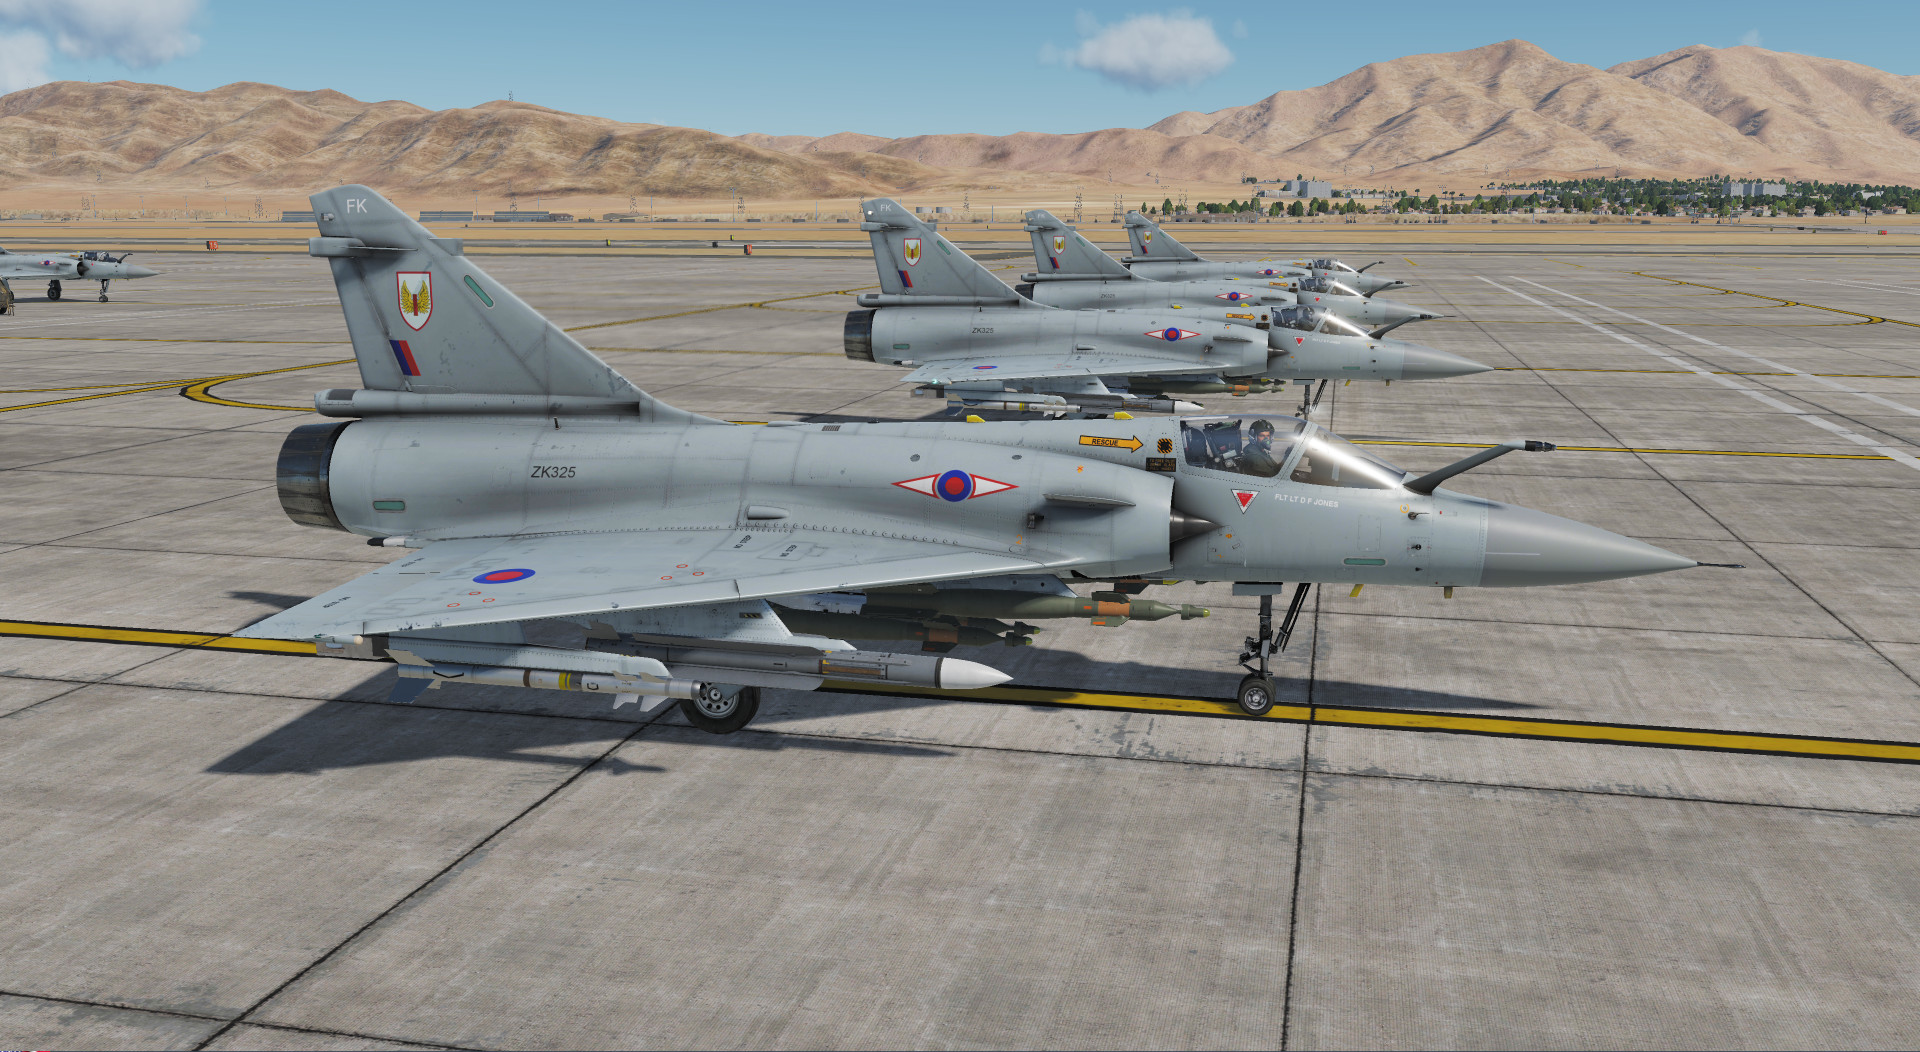 Mirage 2000C - RAF 1 Squadron ZK325 (V4.1 for DCS 2.5.4)